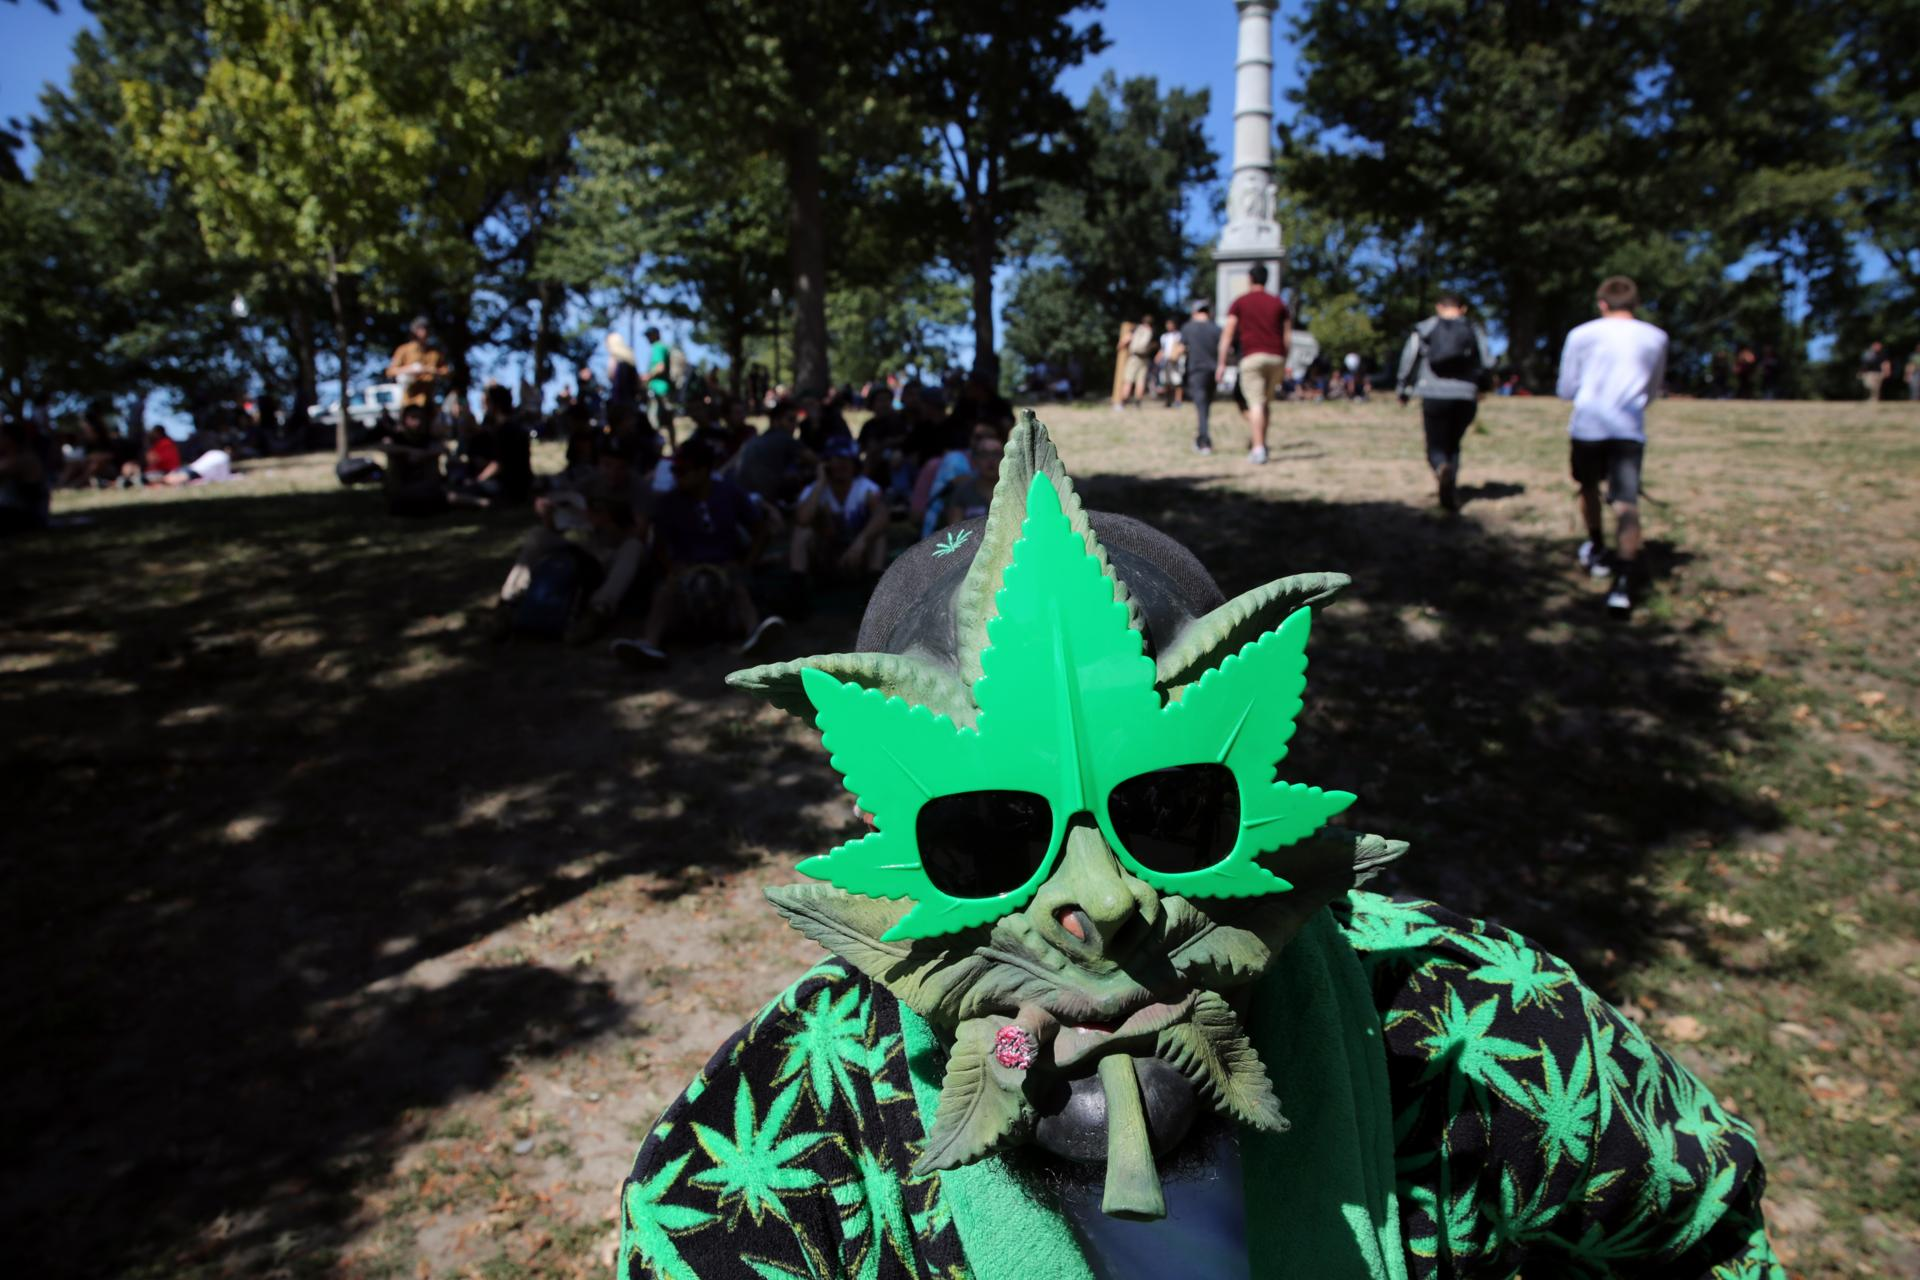 supporters of recreational use of marijuana fill the common the dameion hollis of queens new york who attended the saturday rally in boston